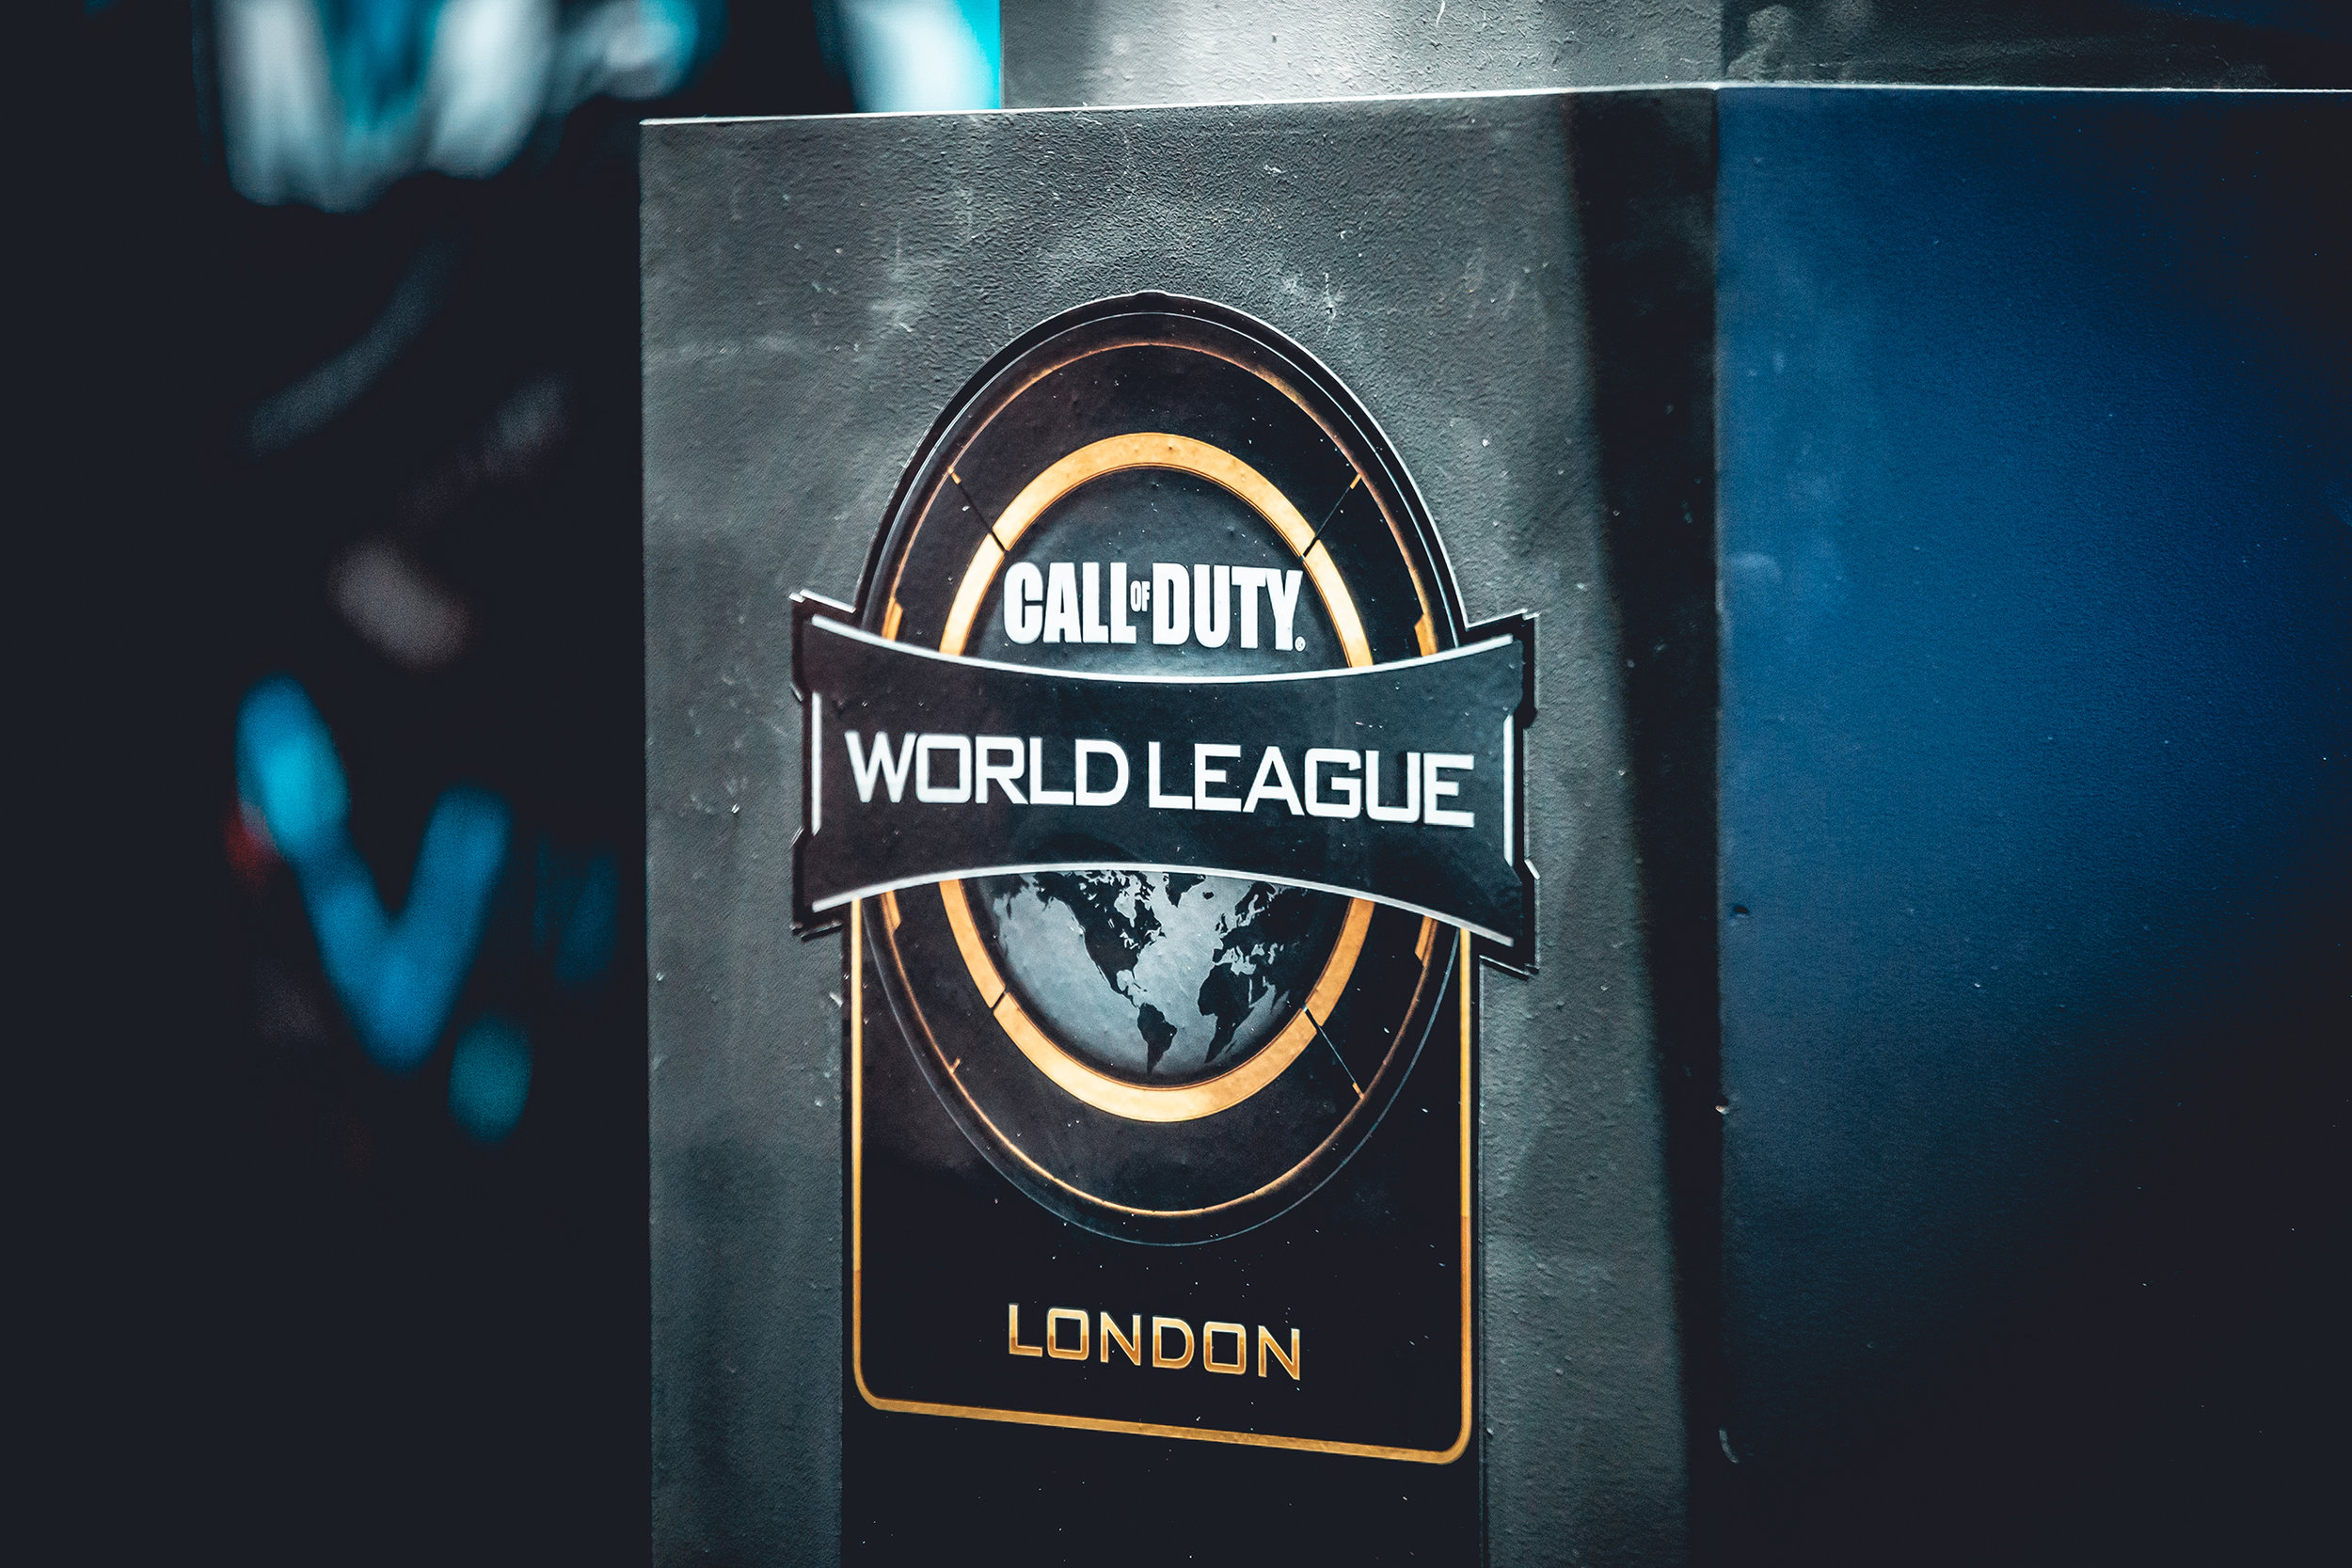 LONDON, ENGLAND - May 5, 2019: Call of Duty World League logo at Copper Box Arena on May 3, 2019 in London, England. (Photo by Joao Ferreira/ESPAT Media)